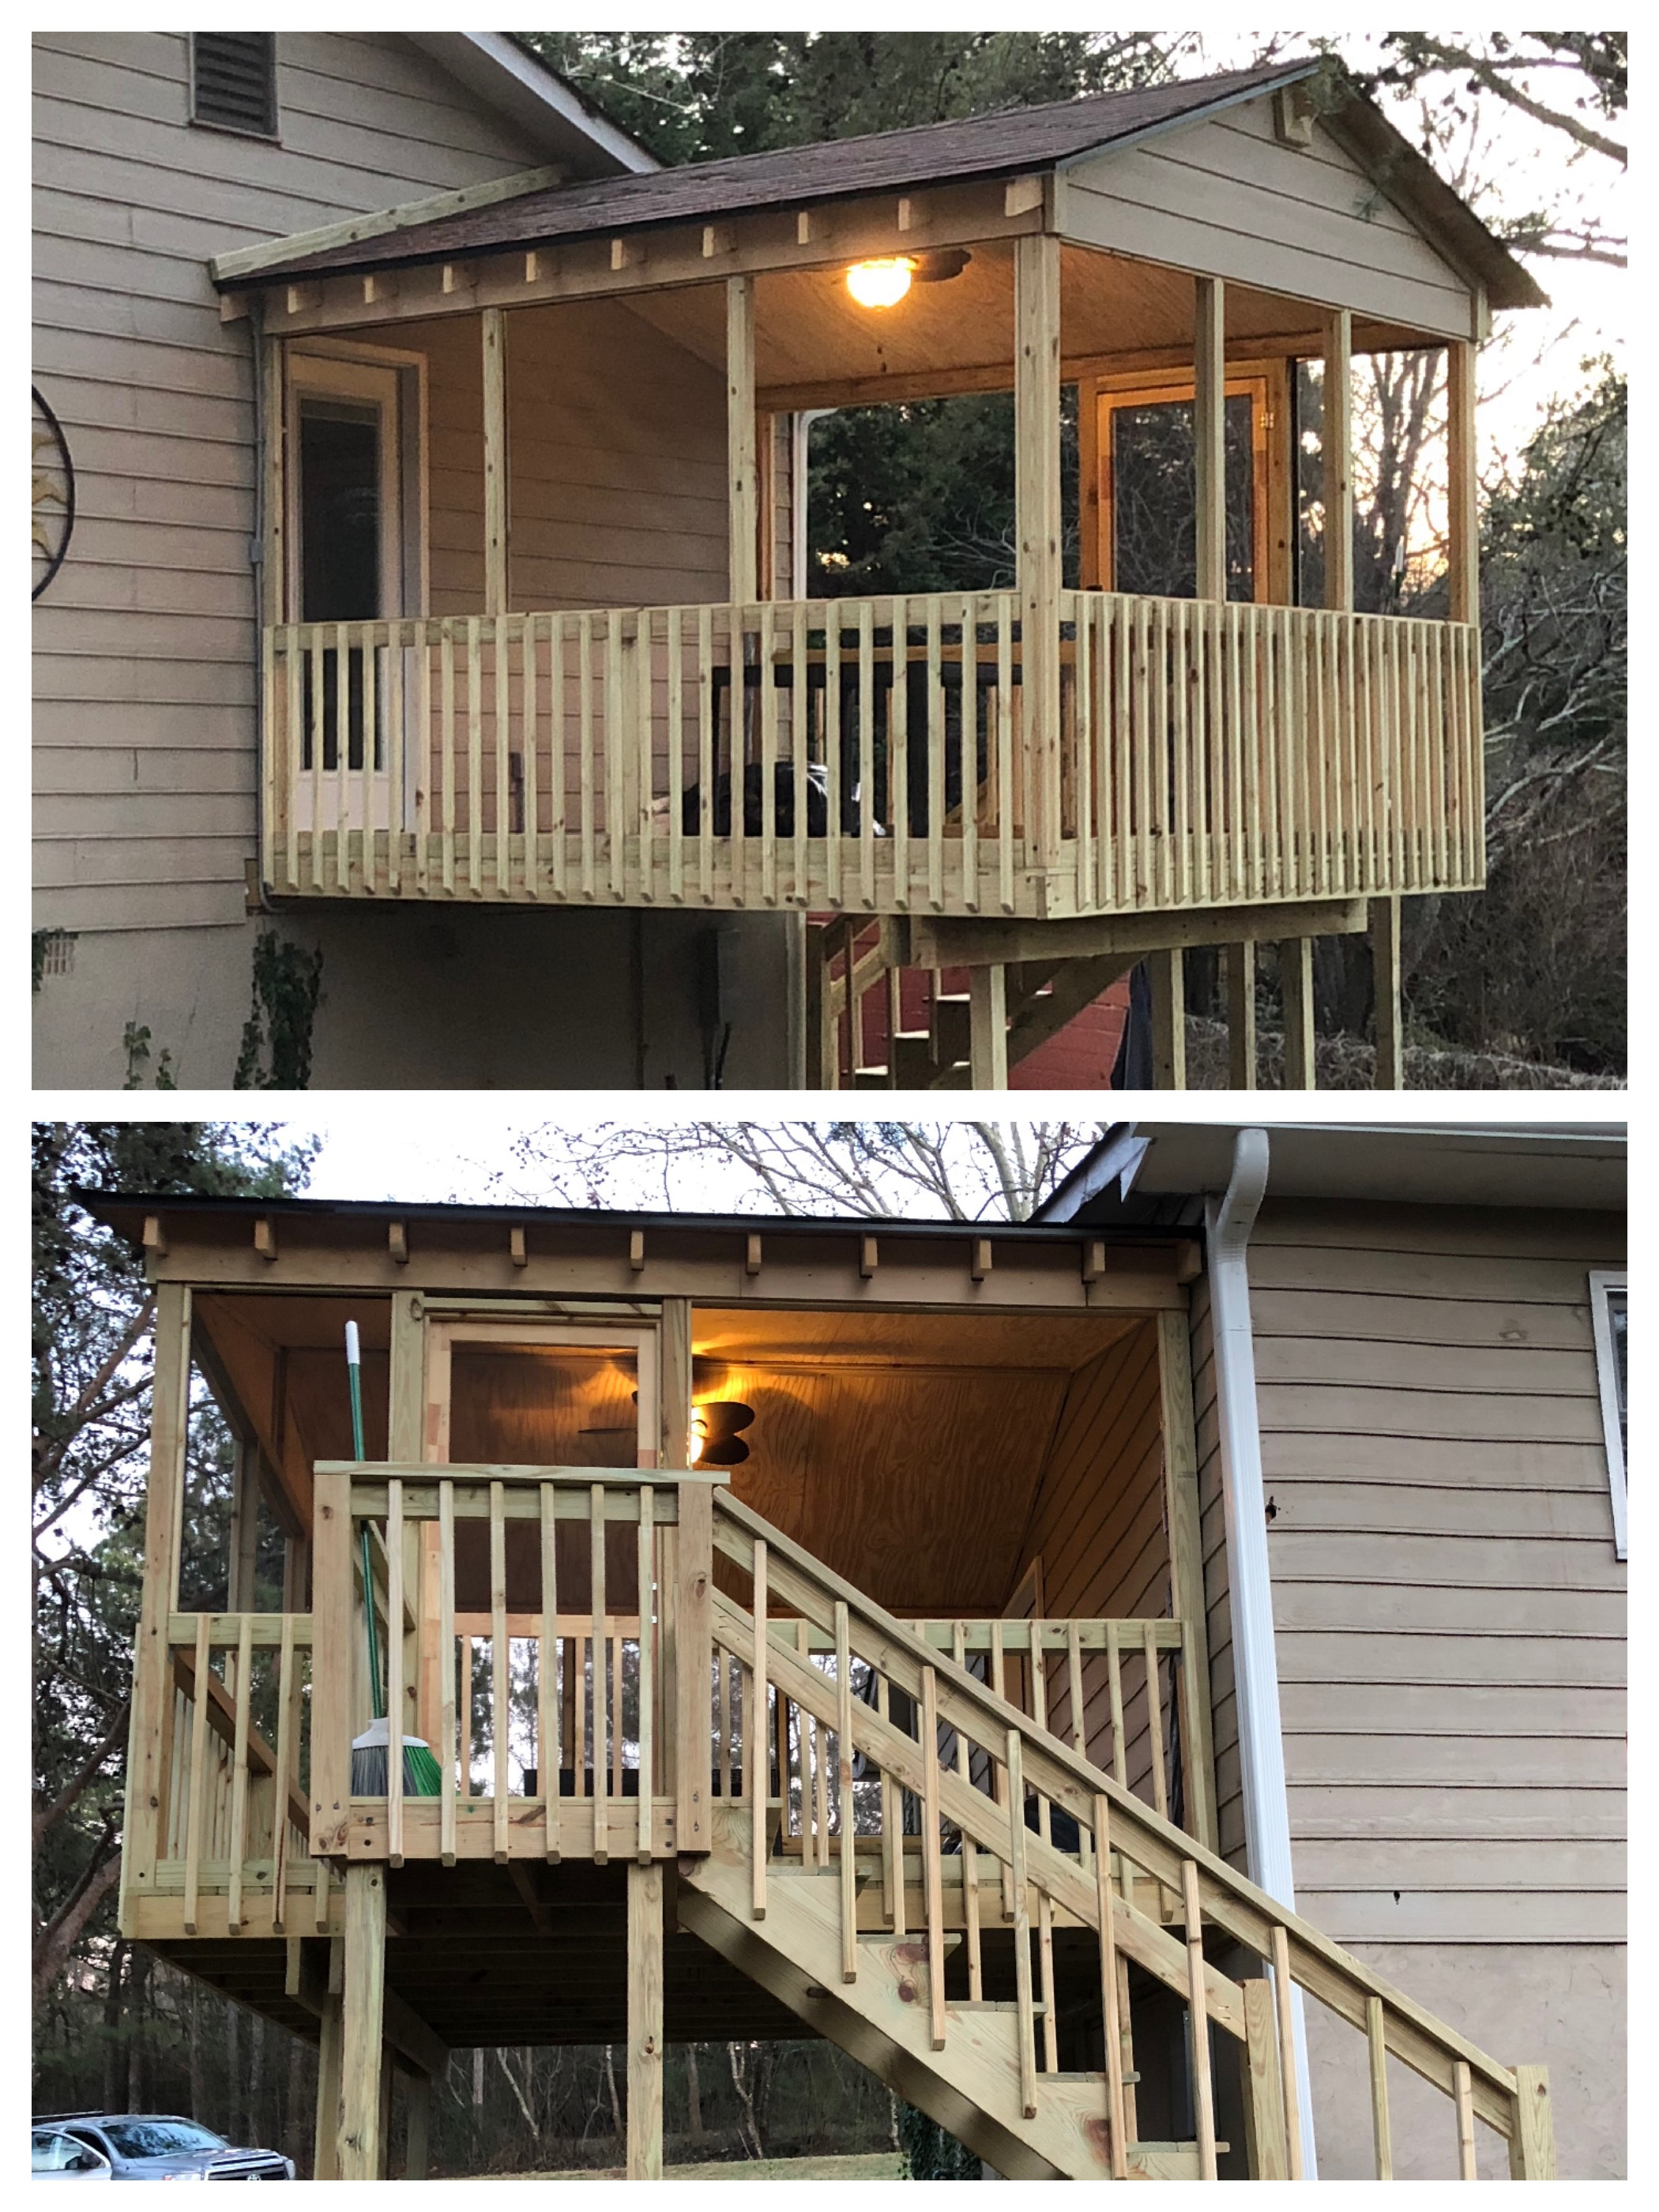 A screened porch addition we built for some long-time clients in Dallas, GA. Giving people new spaces to enjoy is so much fun!